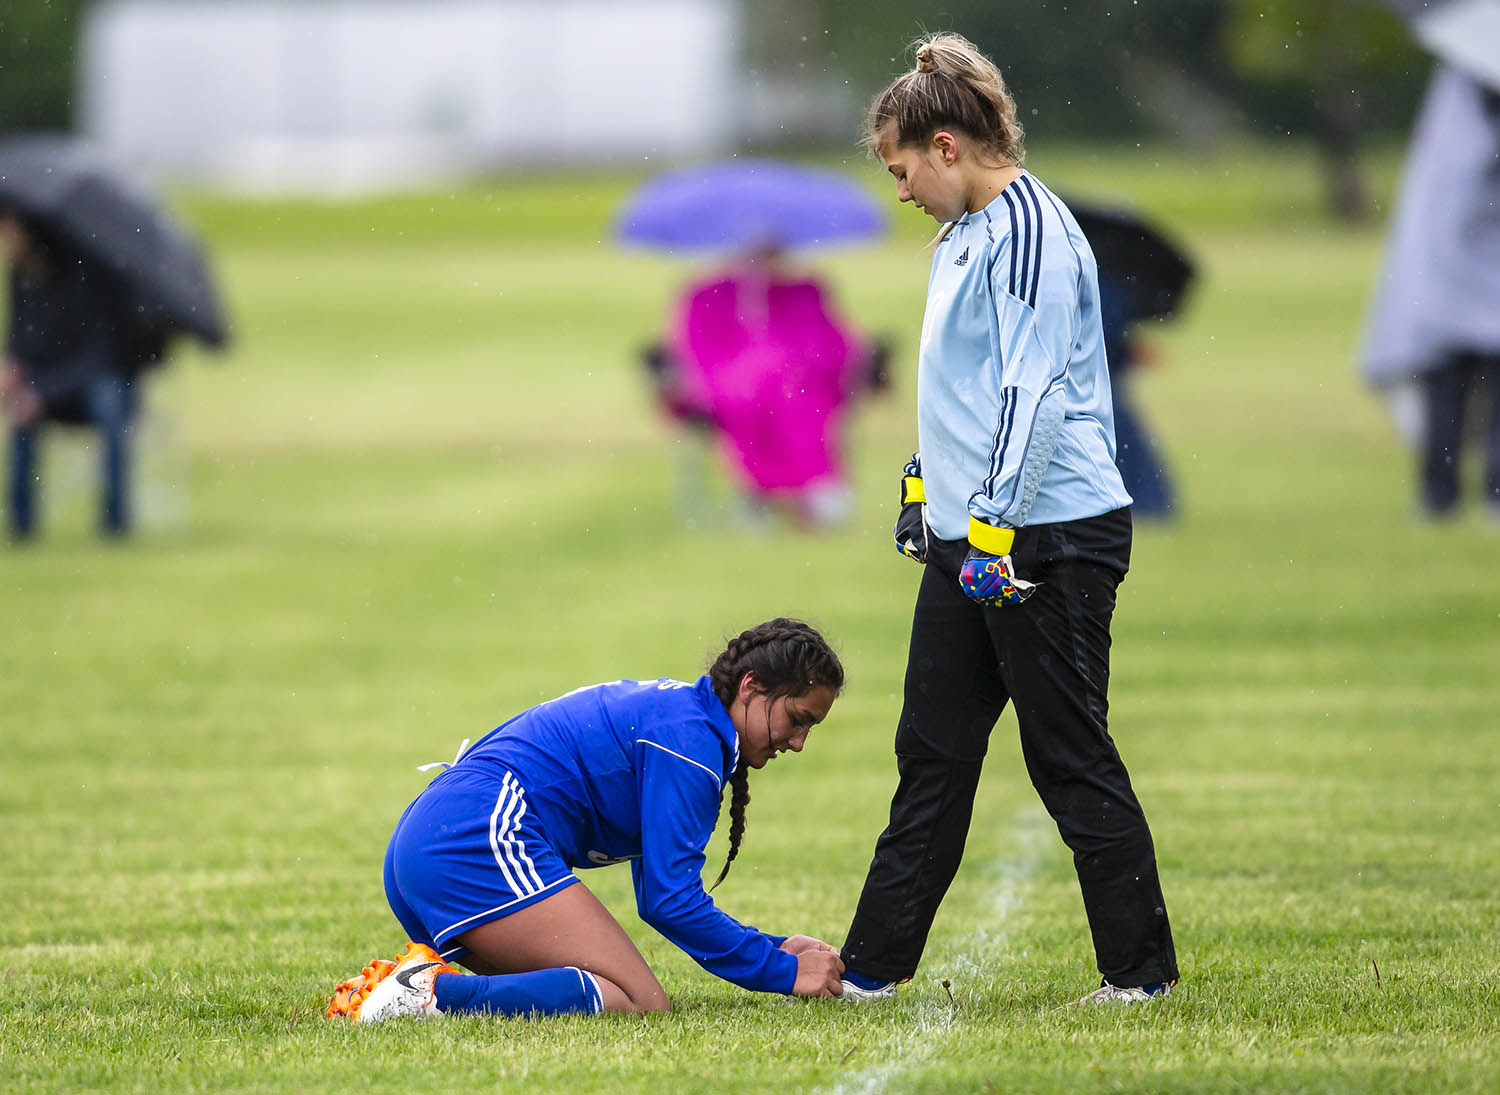 Lutheran's Bailey Wassell (5) helps Lutheran goal keeper Fran Adubato (1) tie her shoe as the Crusaders take on Williamsville in the second half during the Class 1A Riverton Regional Championship at the Riverton Field of Dreams, Saturday, May 11, 2019, in Riverton, Ill. [Justin L. Fowler/The State Journal-Register]